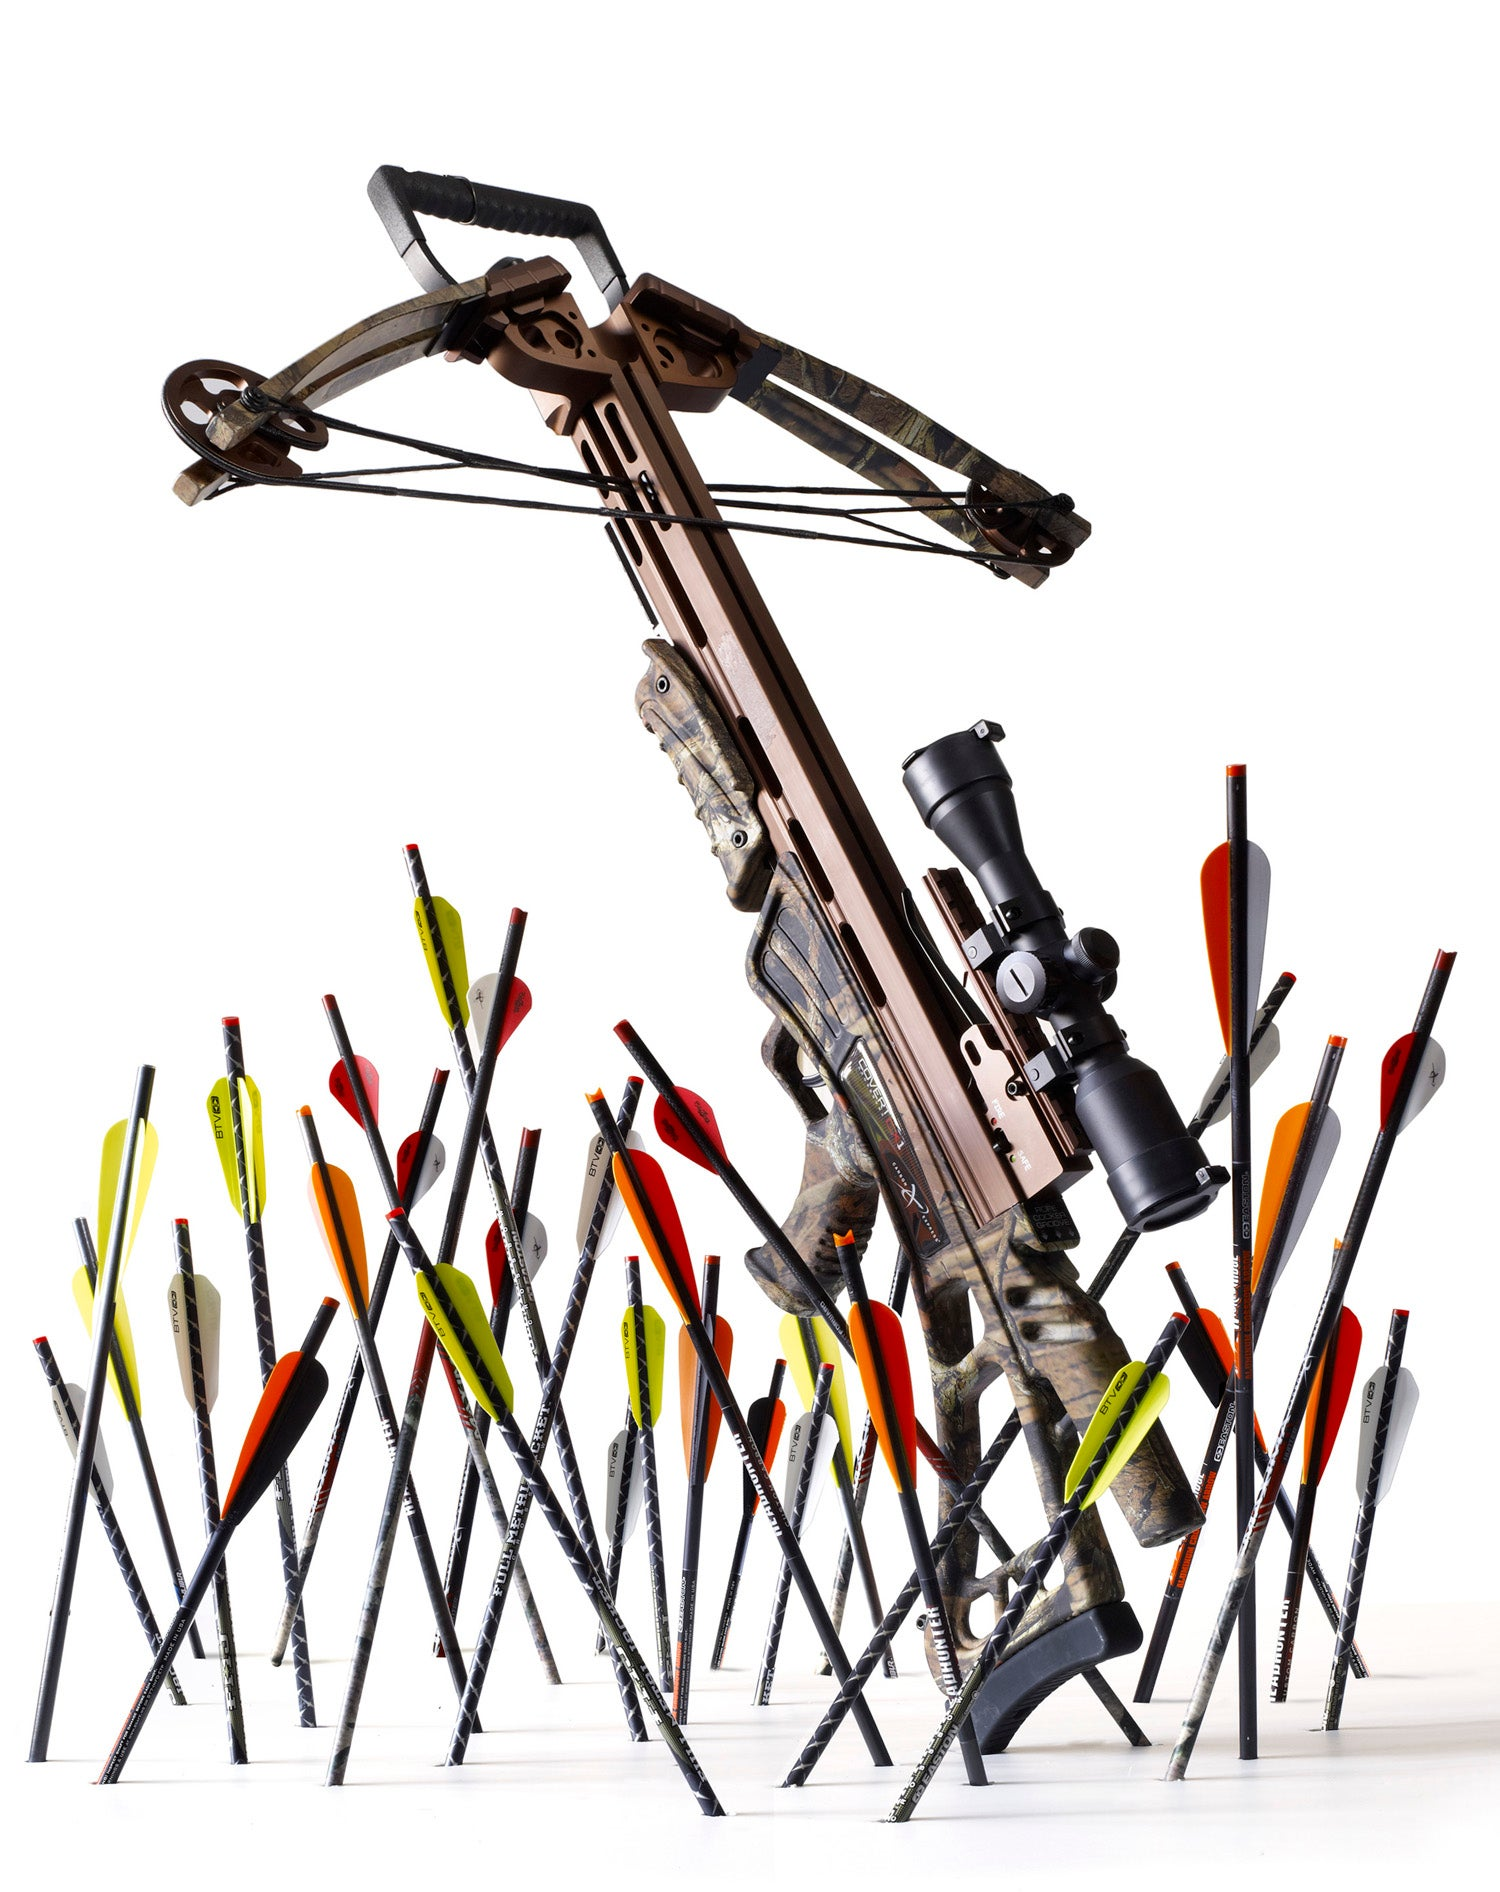 Four Great (And Inexpensive) Entry-Level Crossbows